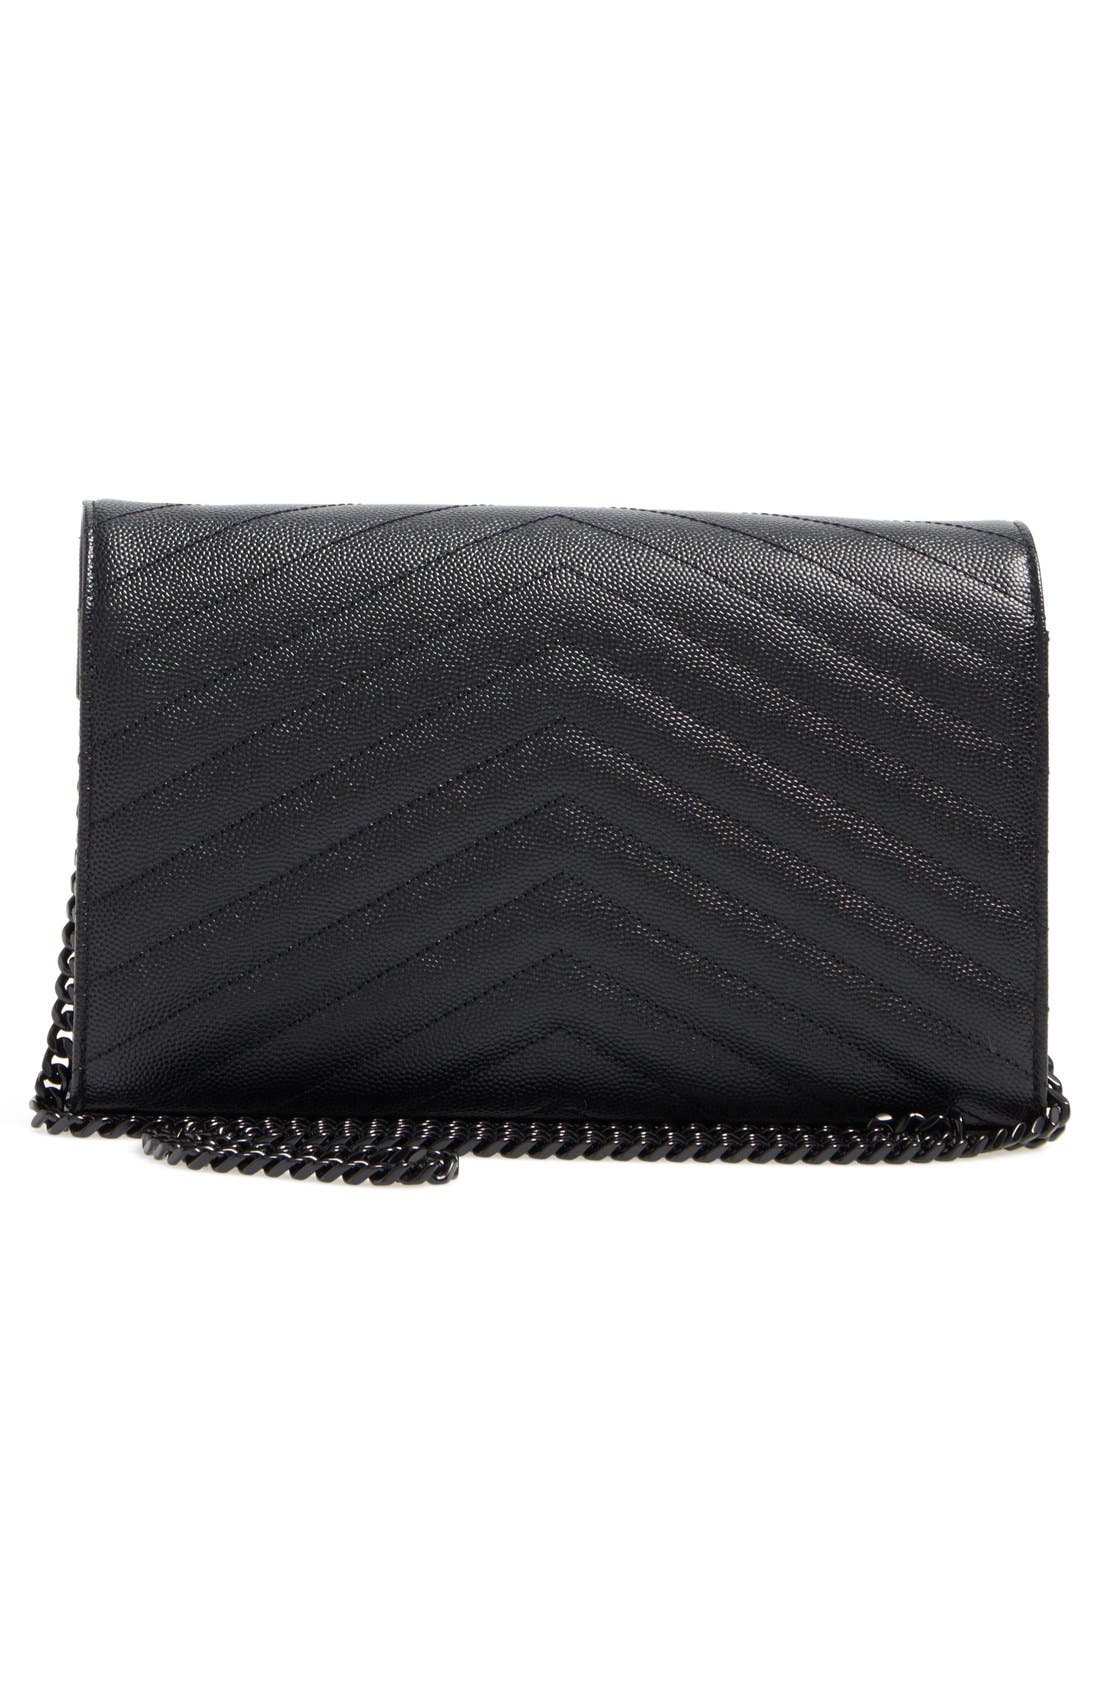 Monogram Quilted Leather Wallet on a Chain,                             Alternate thumbnail 6, color,                             NERO